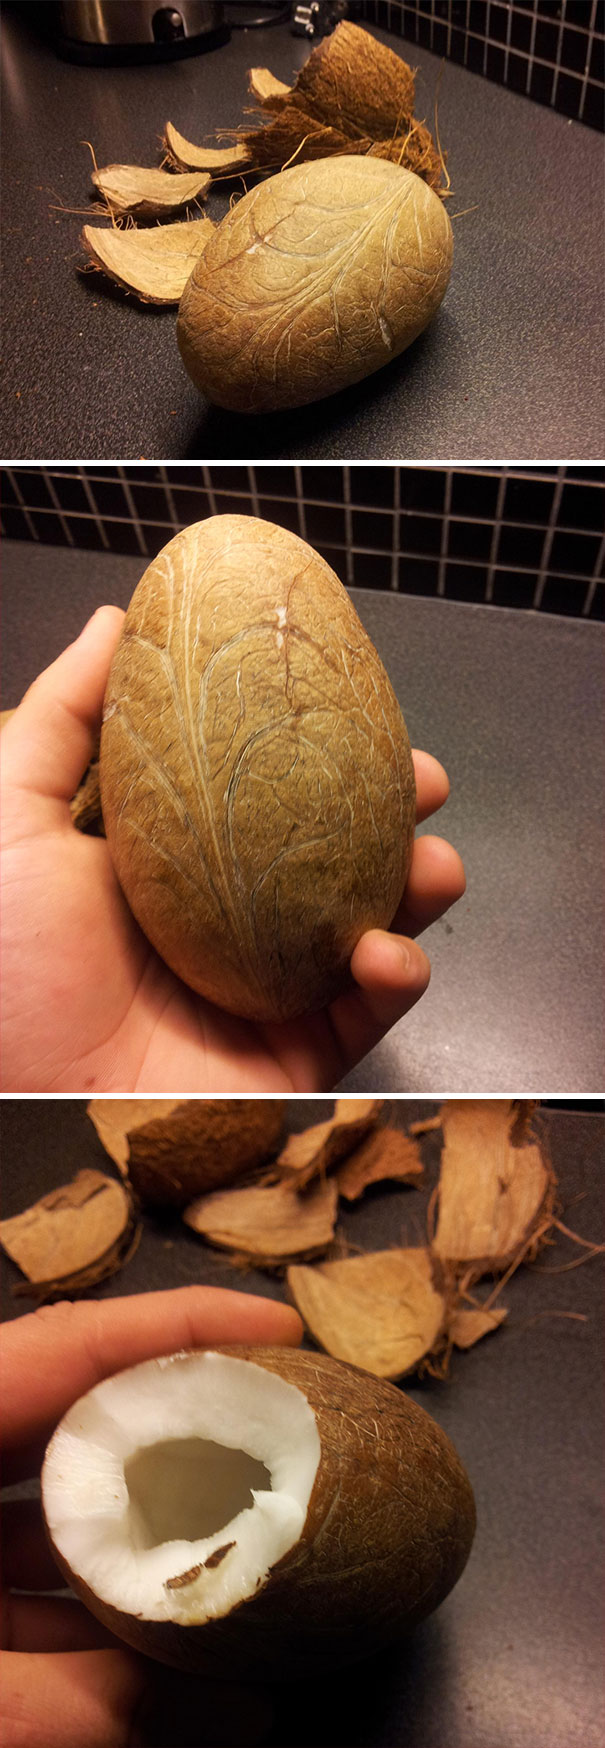 So, I Just Peeled A Coconut Without Breaking It